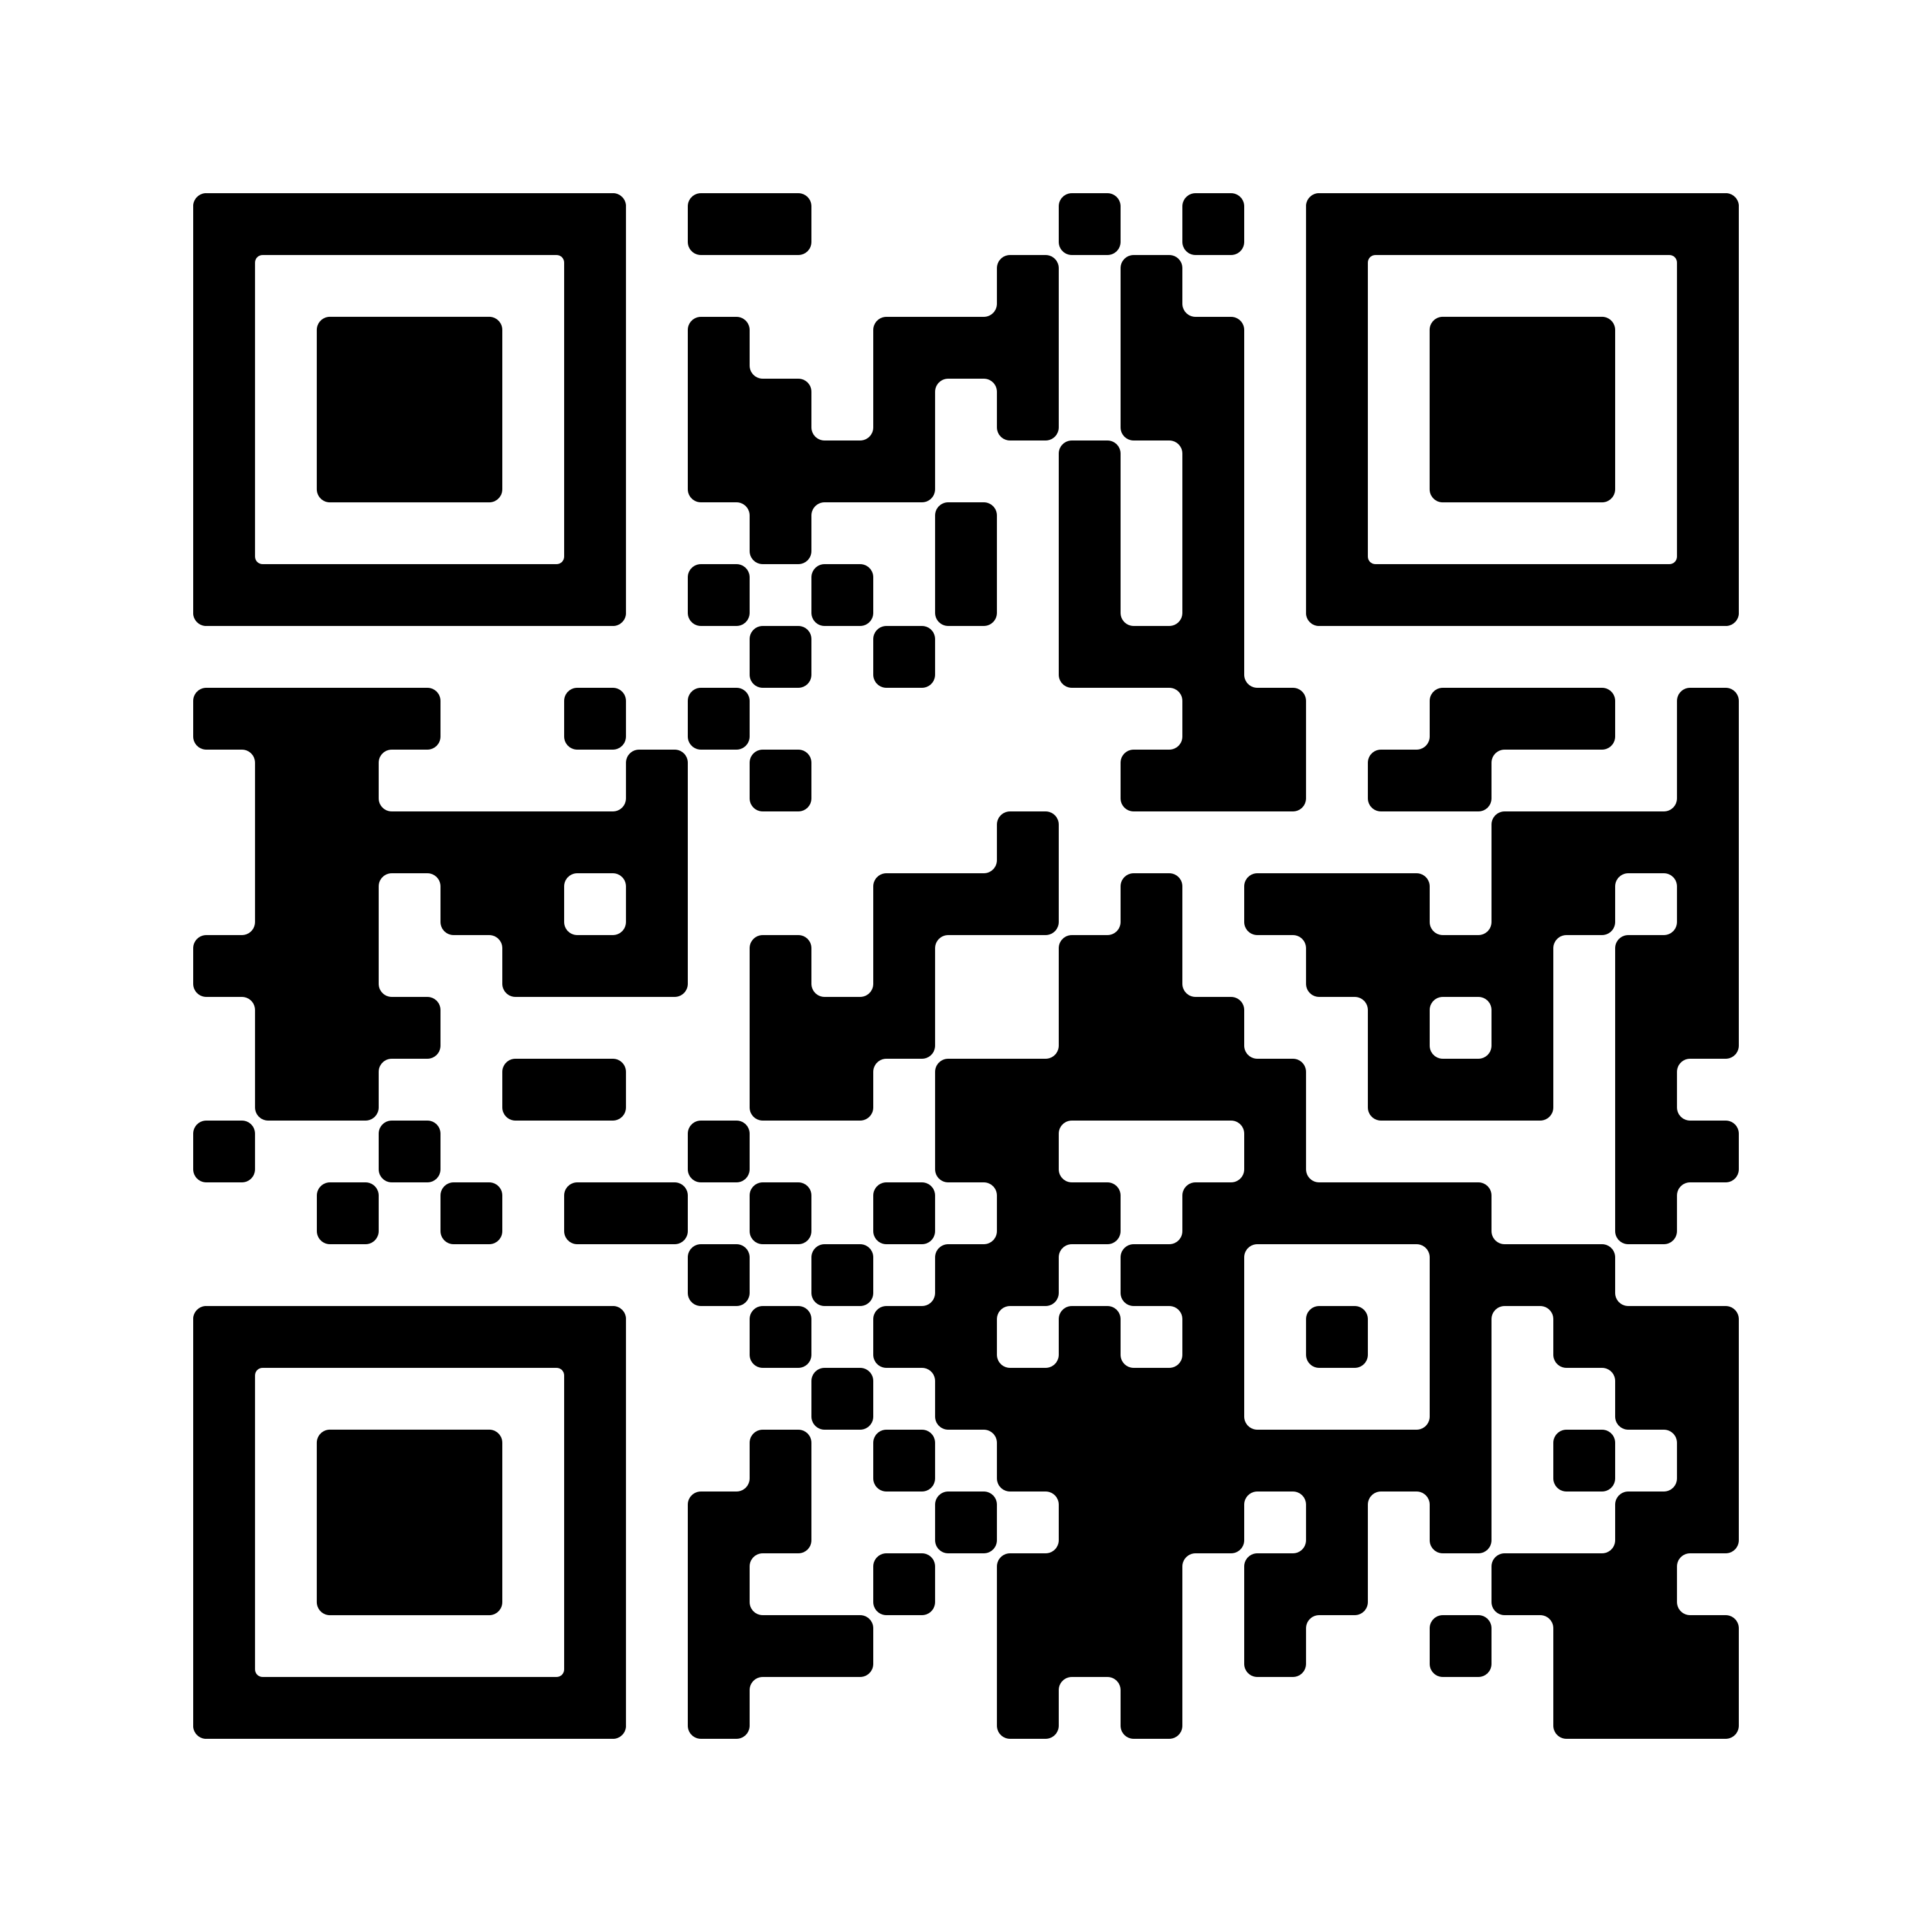 Scan this QR Code with your smart phone to download the app.